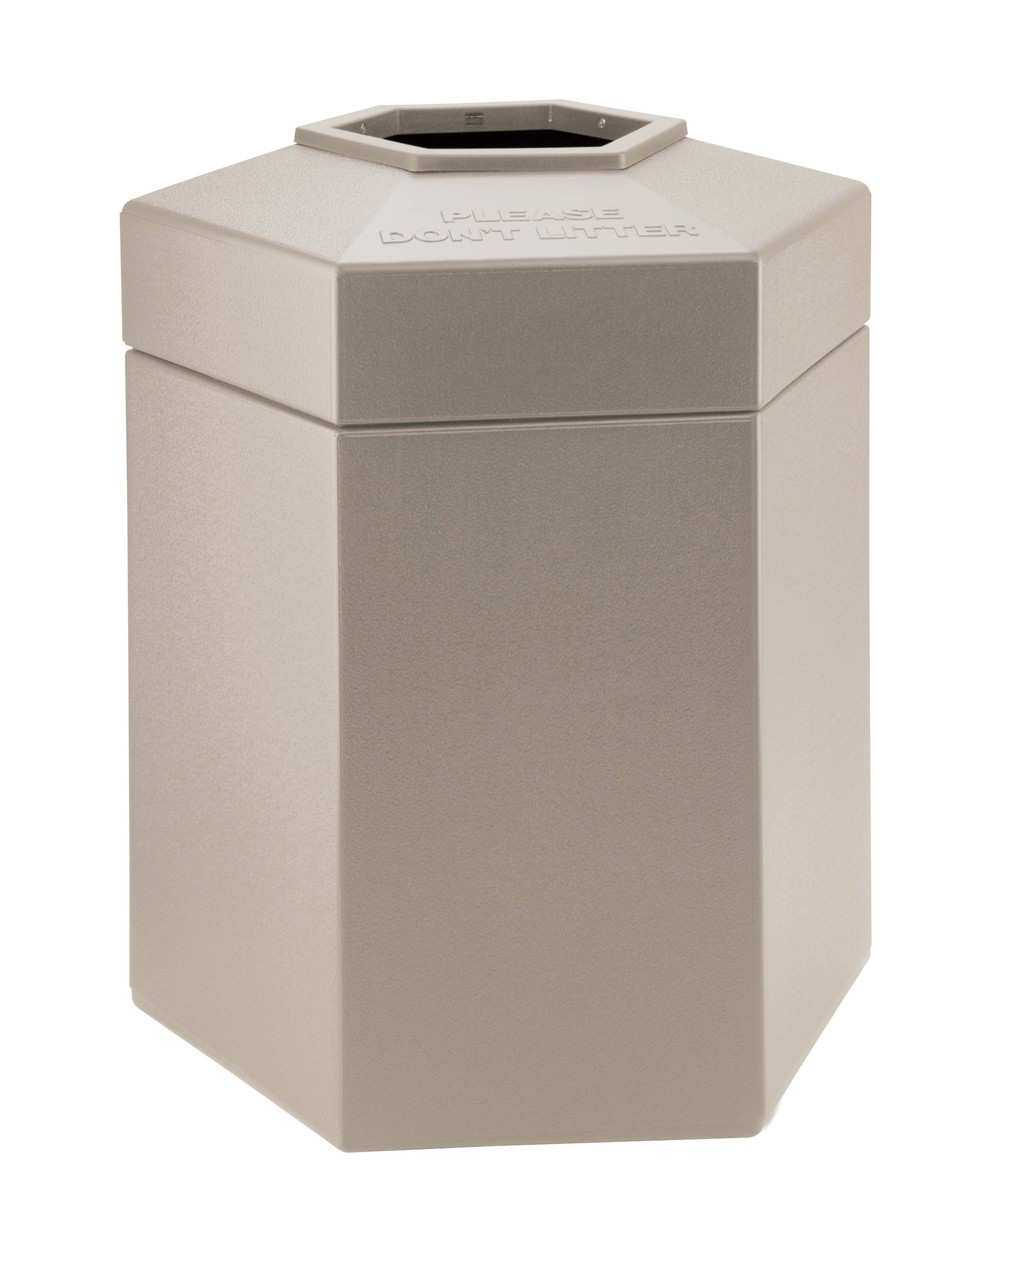 45 Gallon All Season Indoor Outdoor Hexagon Plastic Garbage Can Beige